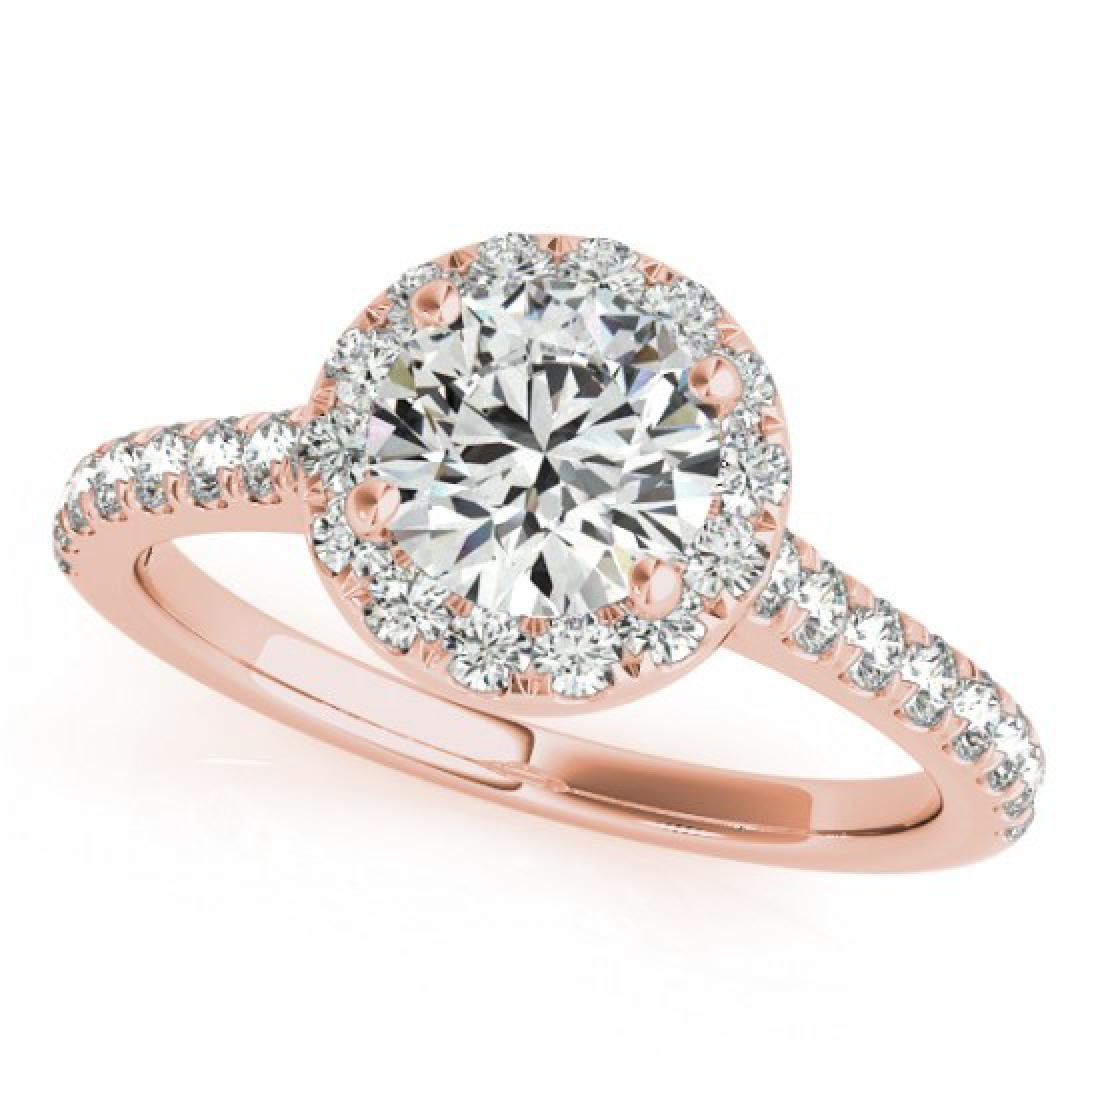 1.4 CTW Certified VS/SI Diamond Solitaire Halo Ring 14K